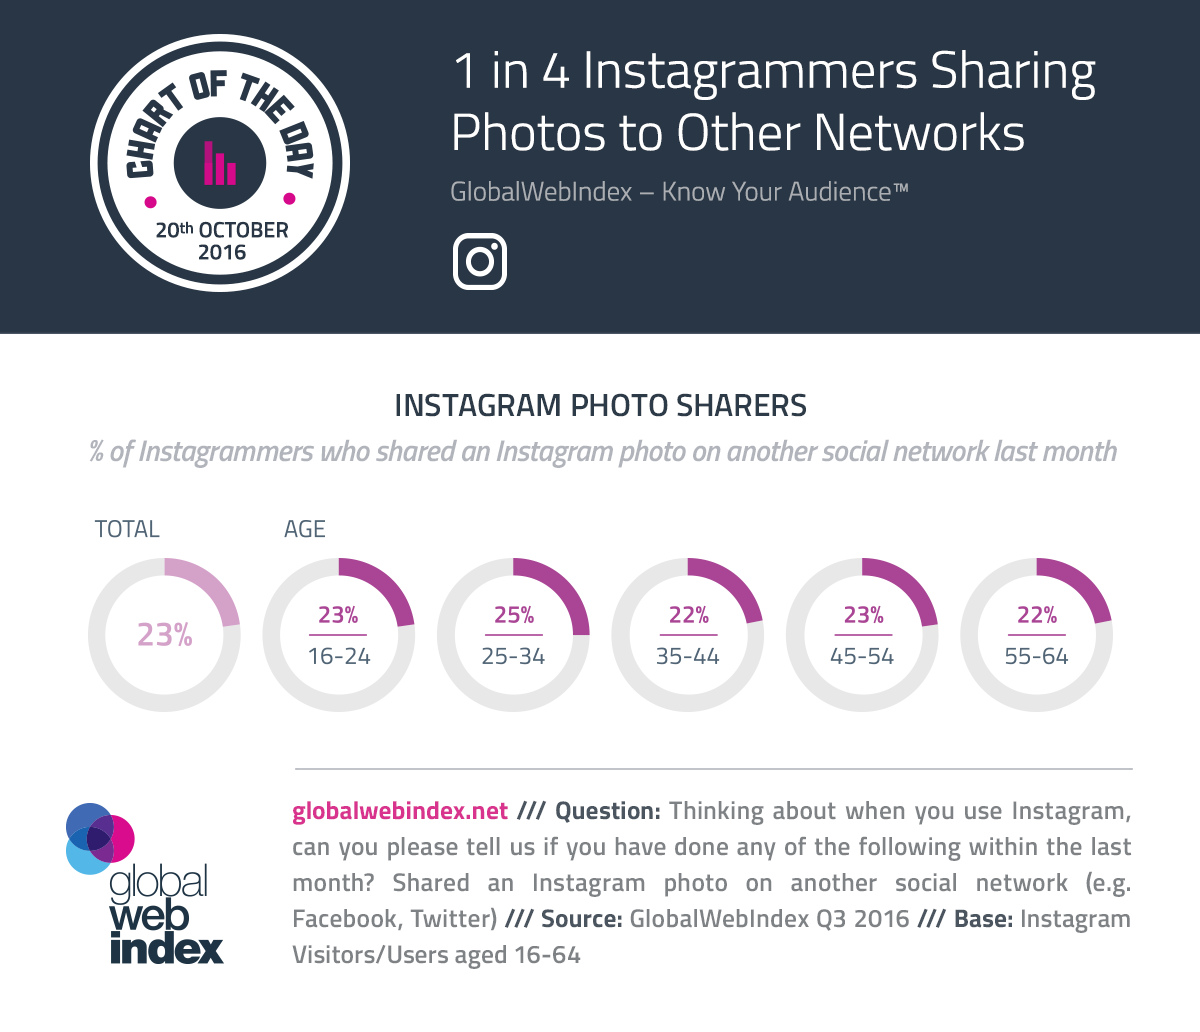 1 in 4 Instagrammers Sharing Photos to Other Networks